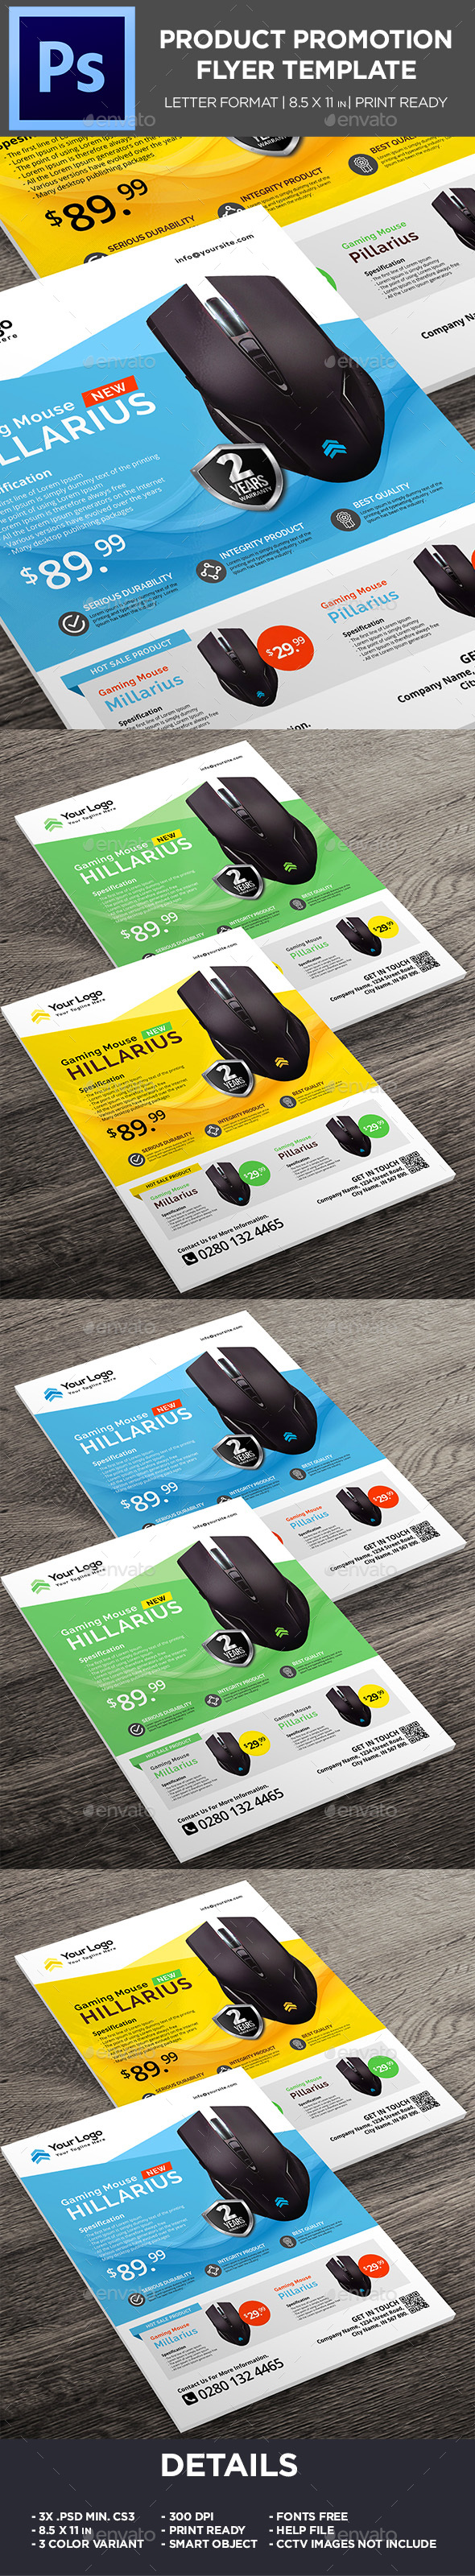 Product Flyer -  Mouse Gaming Promotion Flyer - Corporate Flyers